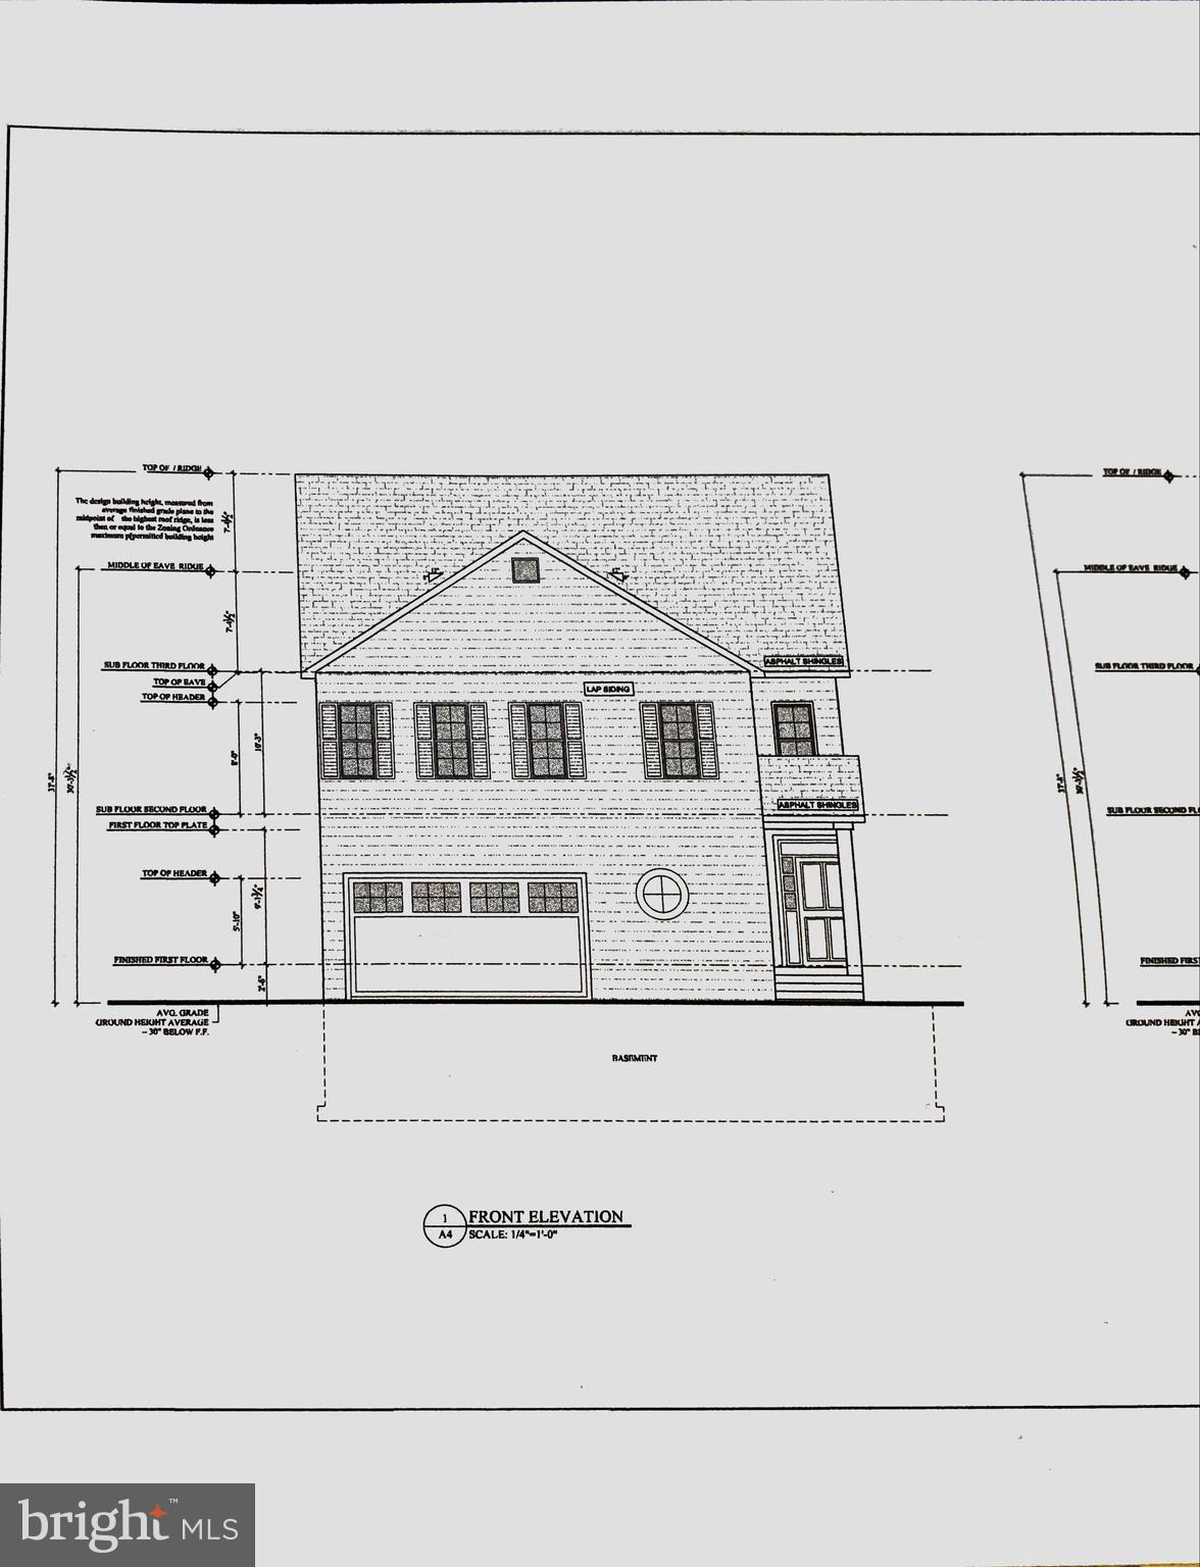 $1,454,000 - 5Br/5Ba -  for Sale in None Available, Fairfax Station